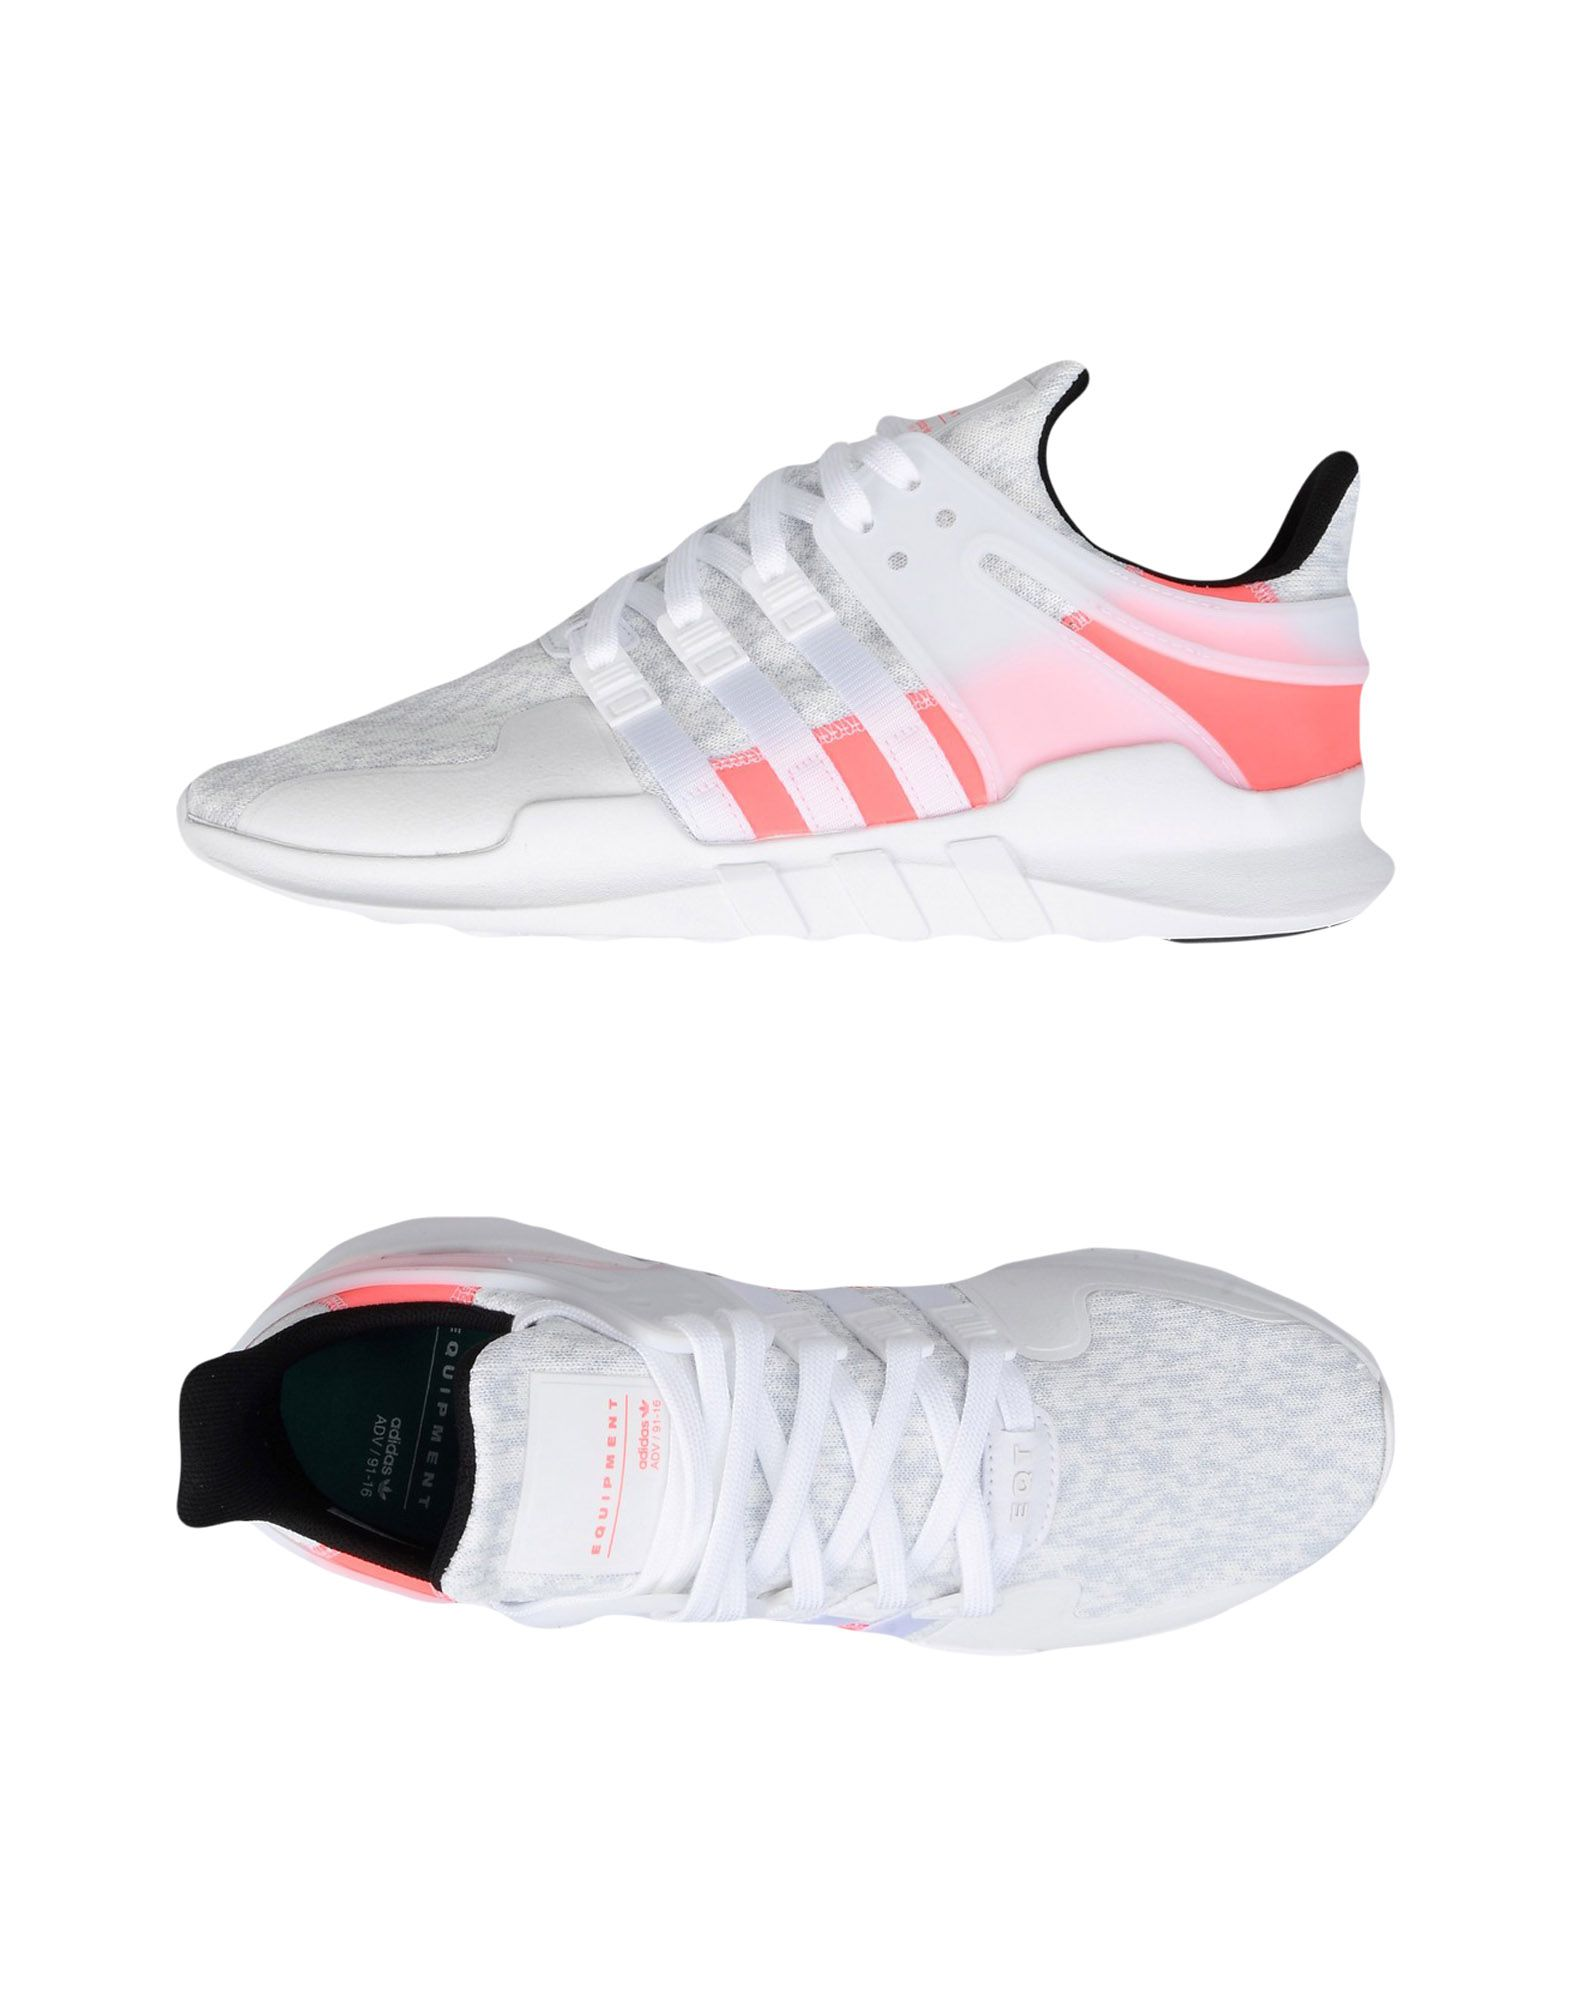 Sneakers Adidas Originals Eqt Support Adv - Uomo - Acquista online su